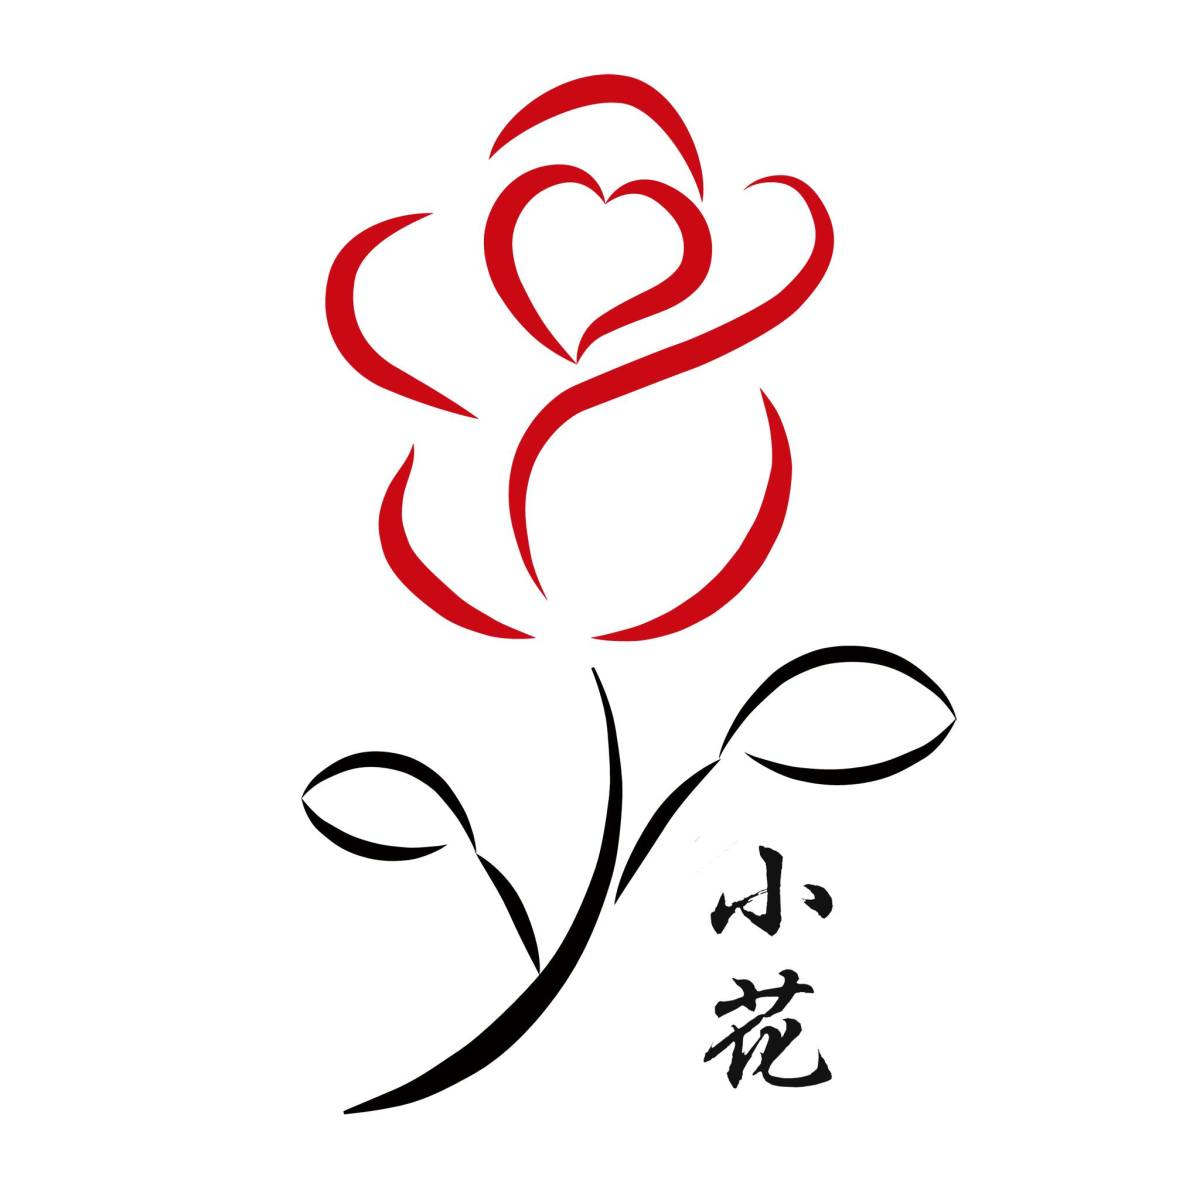 Pro-life spotlight #1: China Little Flower